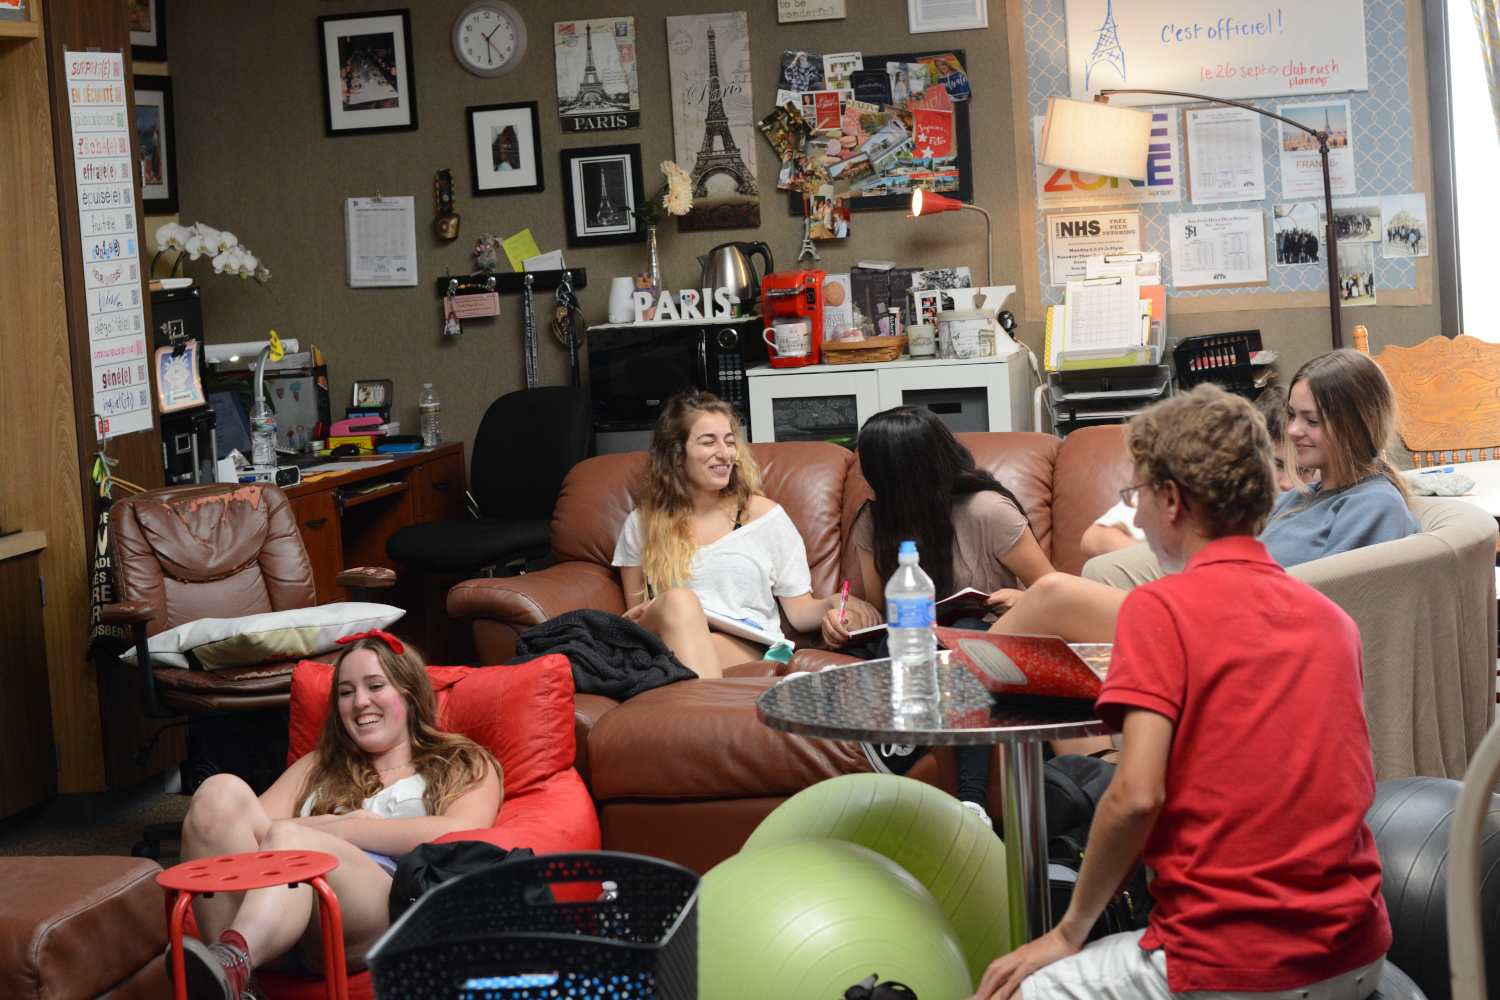 Students in Keeler's room sit comfortably on couches,  and bean bags to learn in an efficient way.